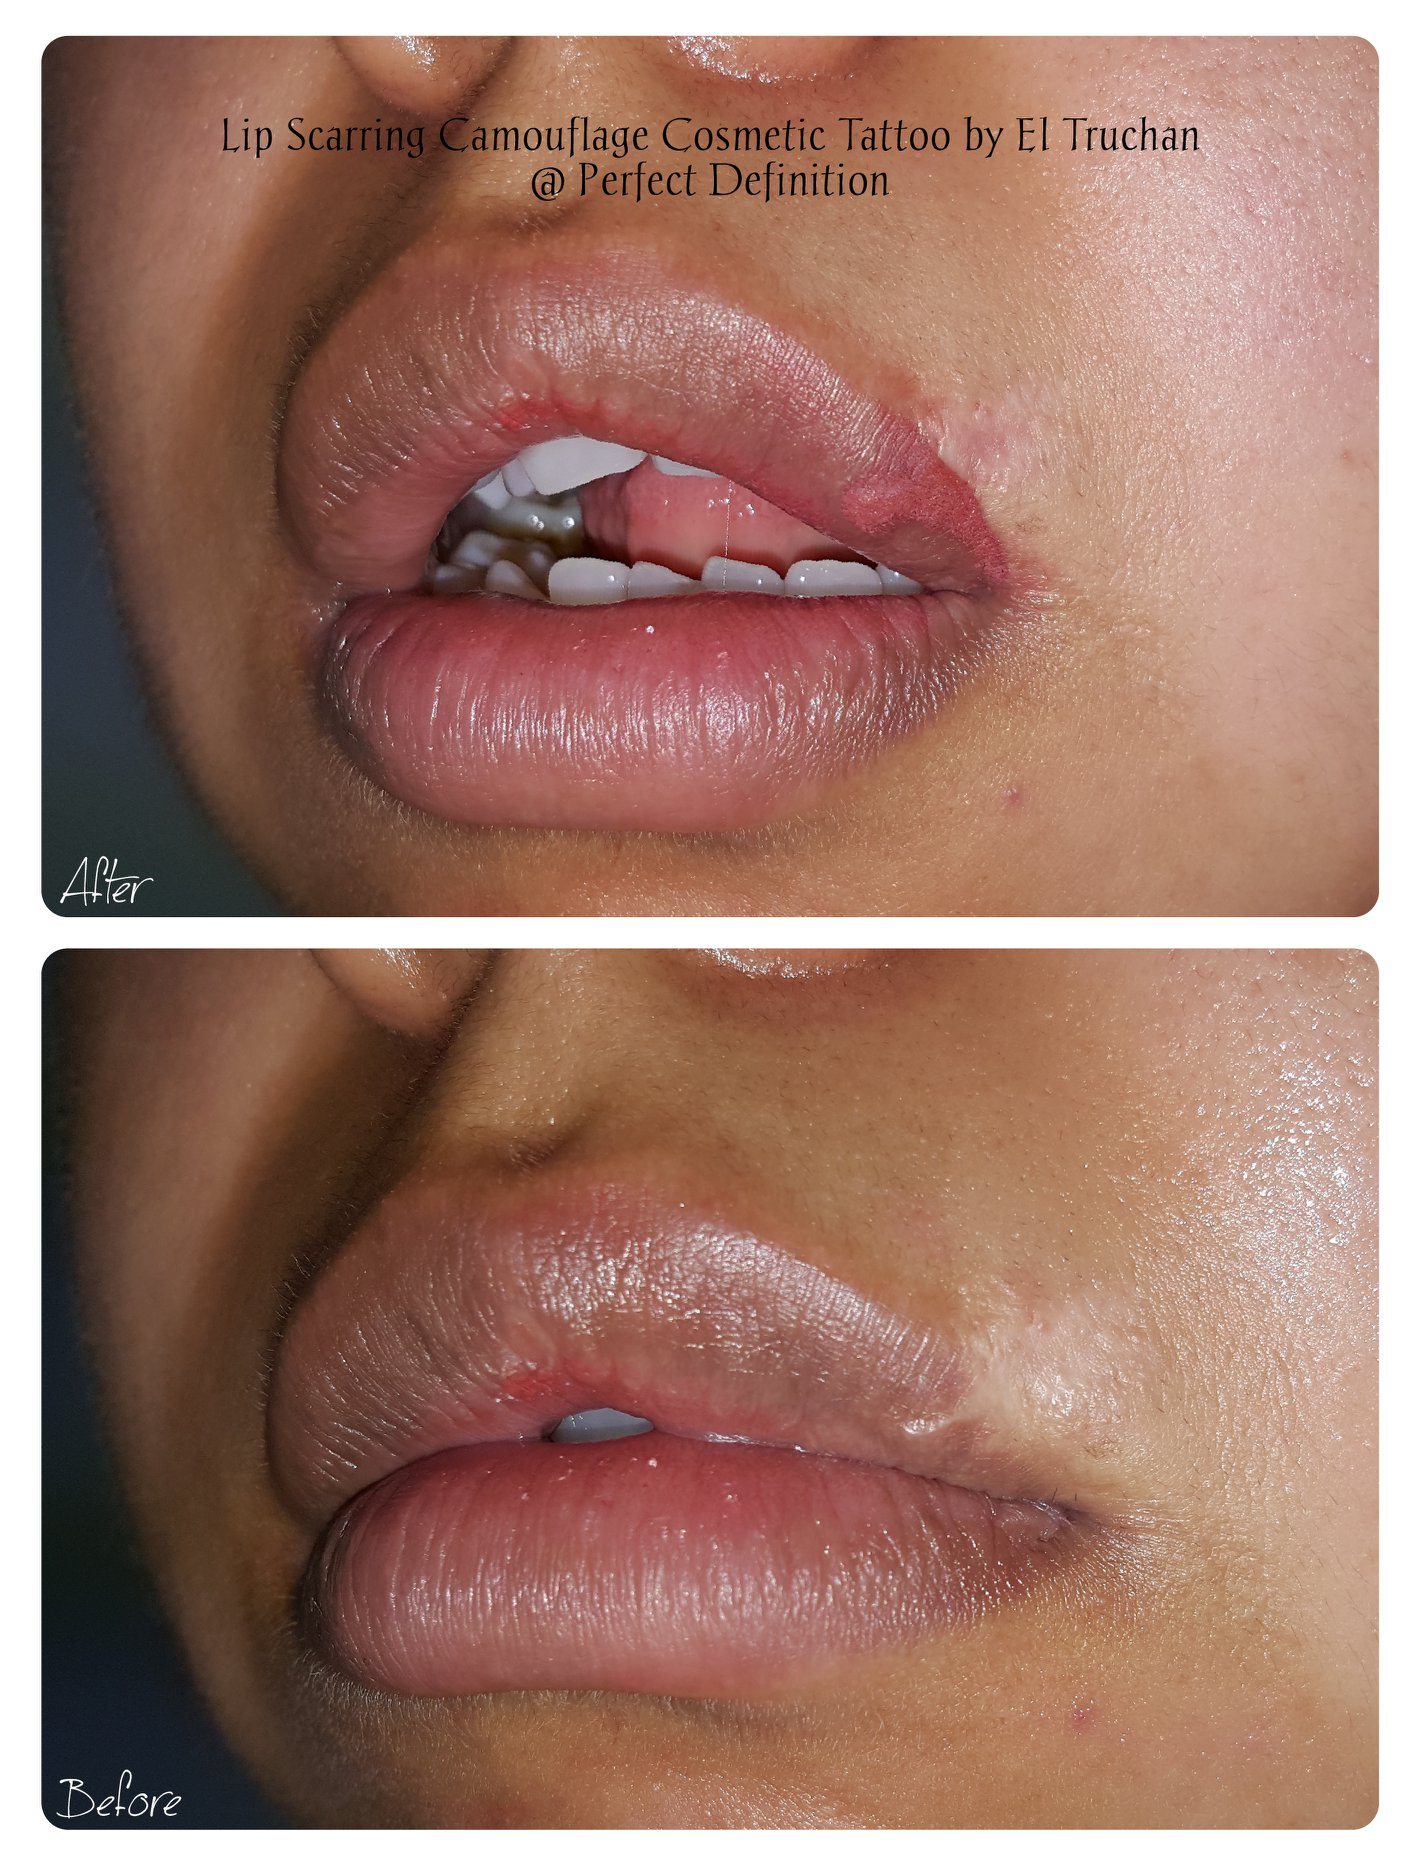 Lip Scarring Camouflage Cosmetic by El T